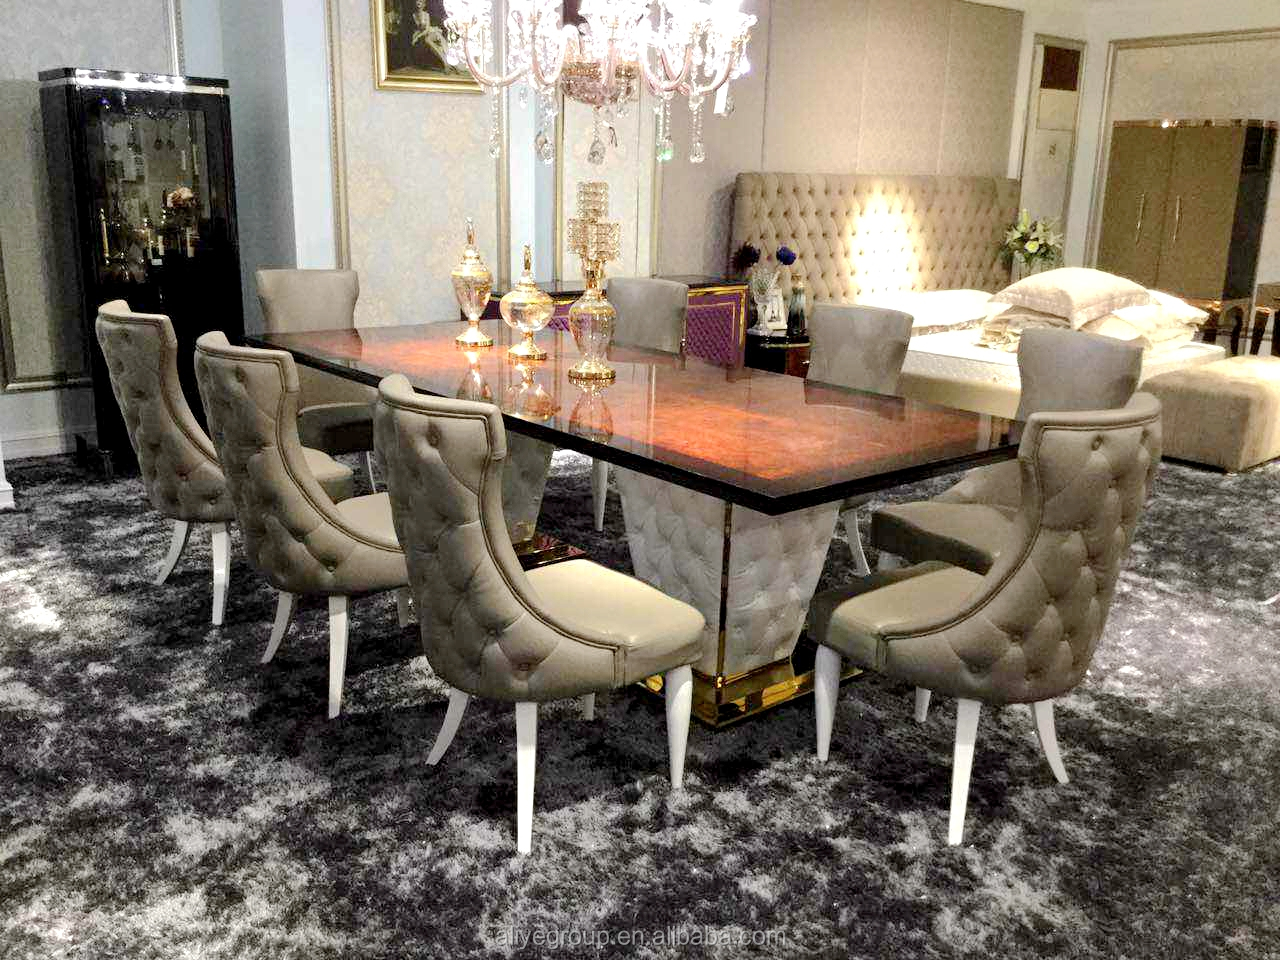 Dining Chairs Philippines Italian Marble Dining Table Set 6 Chairs Philippines Buy